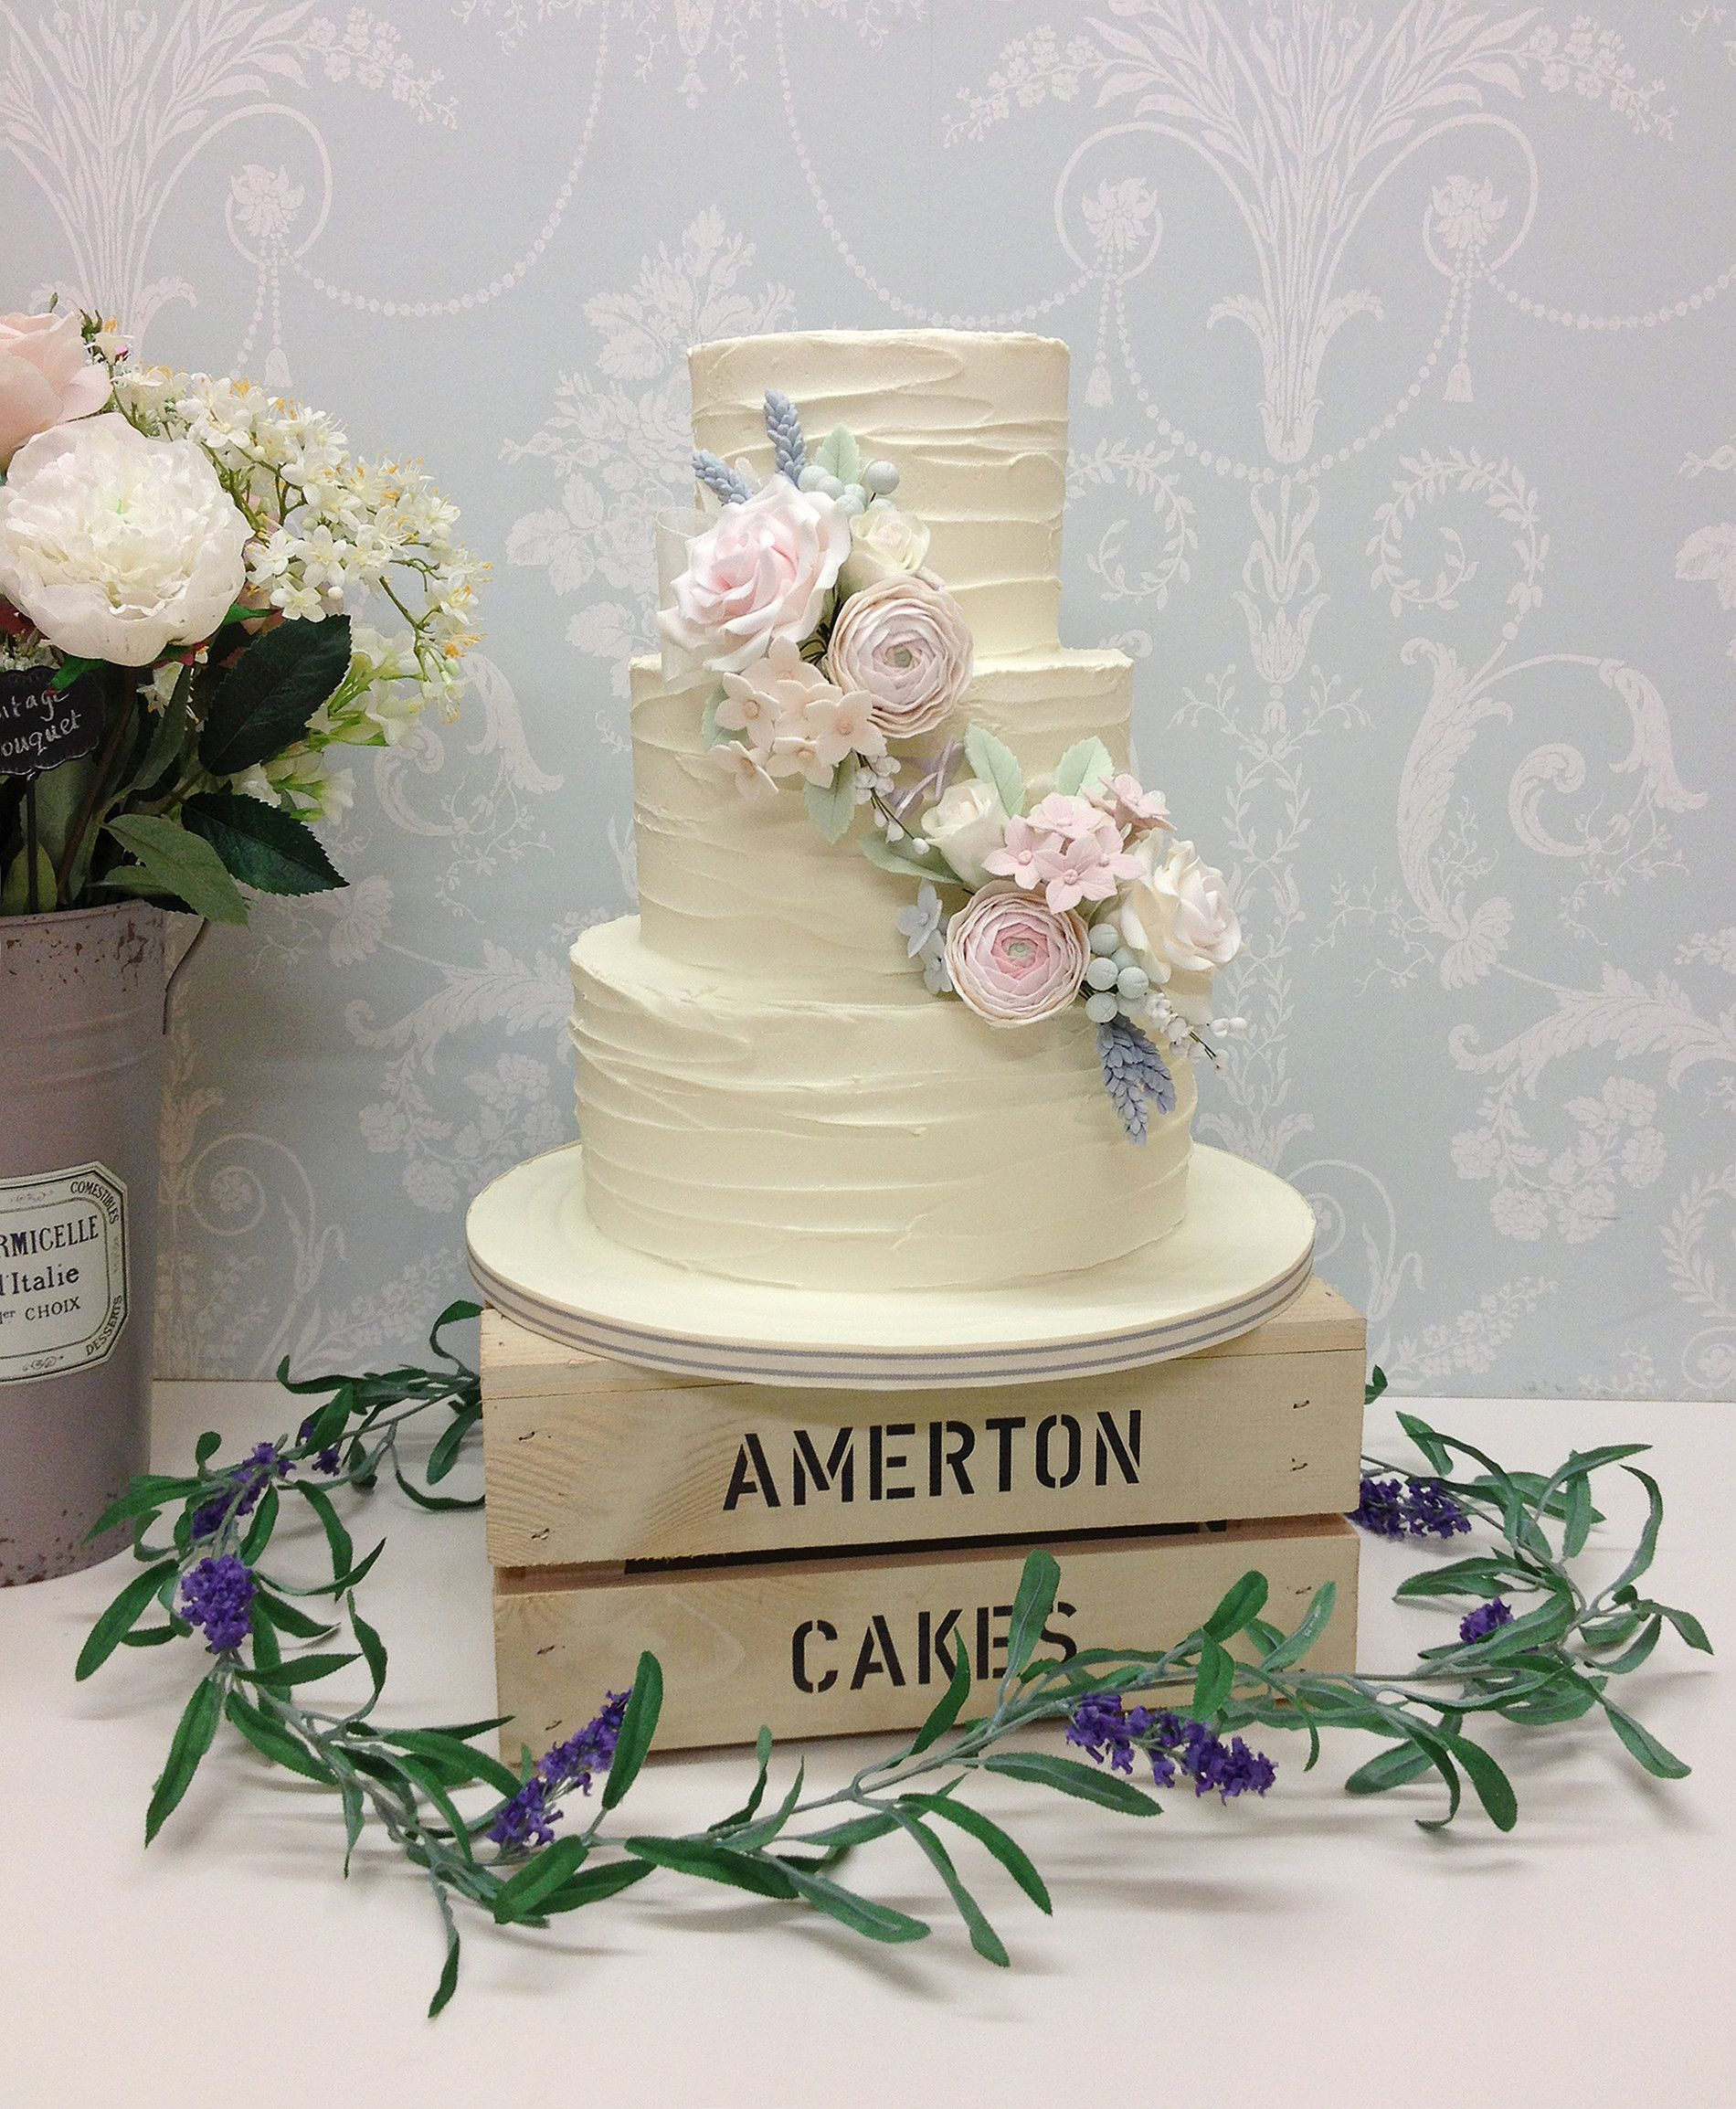 wedding cake suppliers in stoke-on-trent, staffordshire